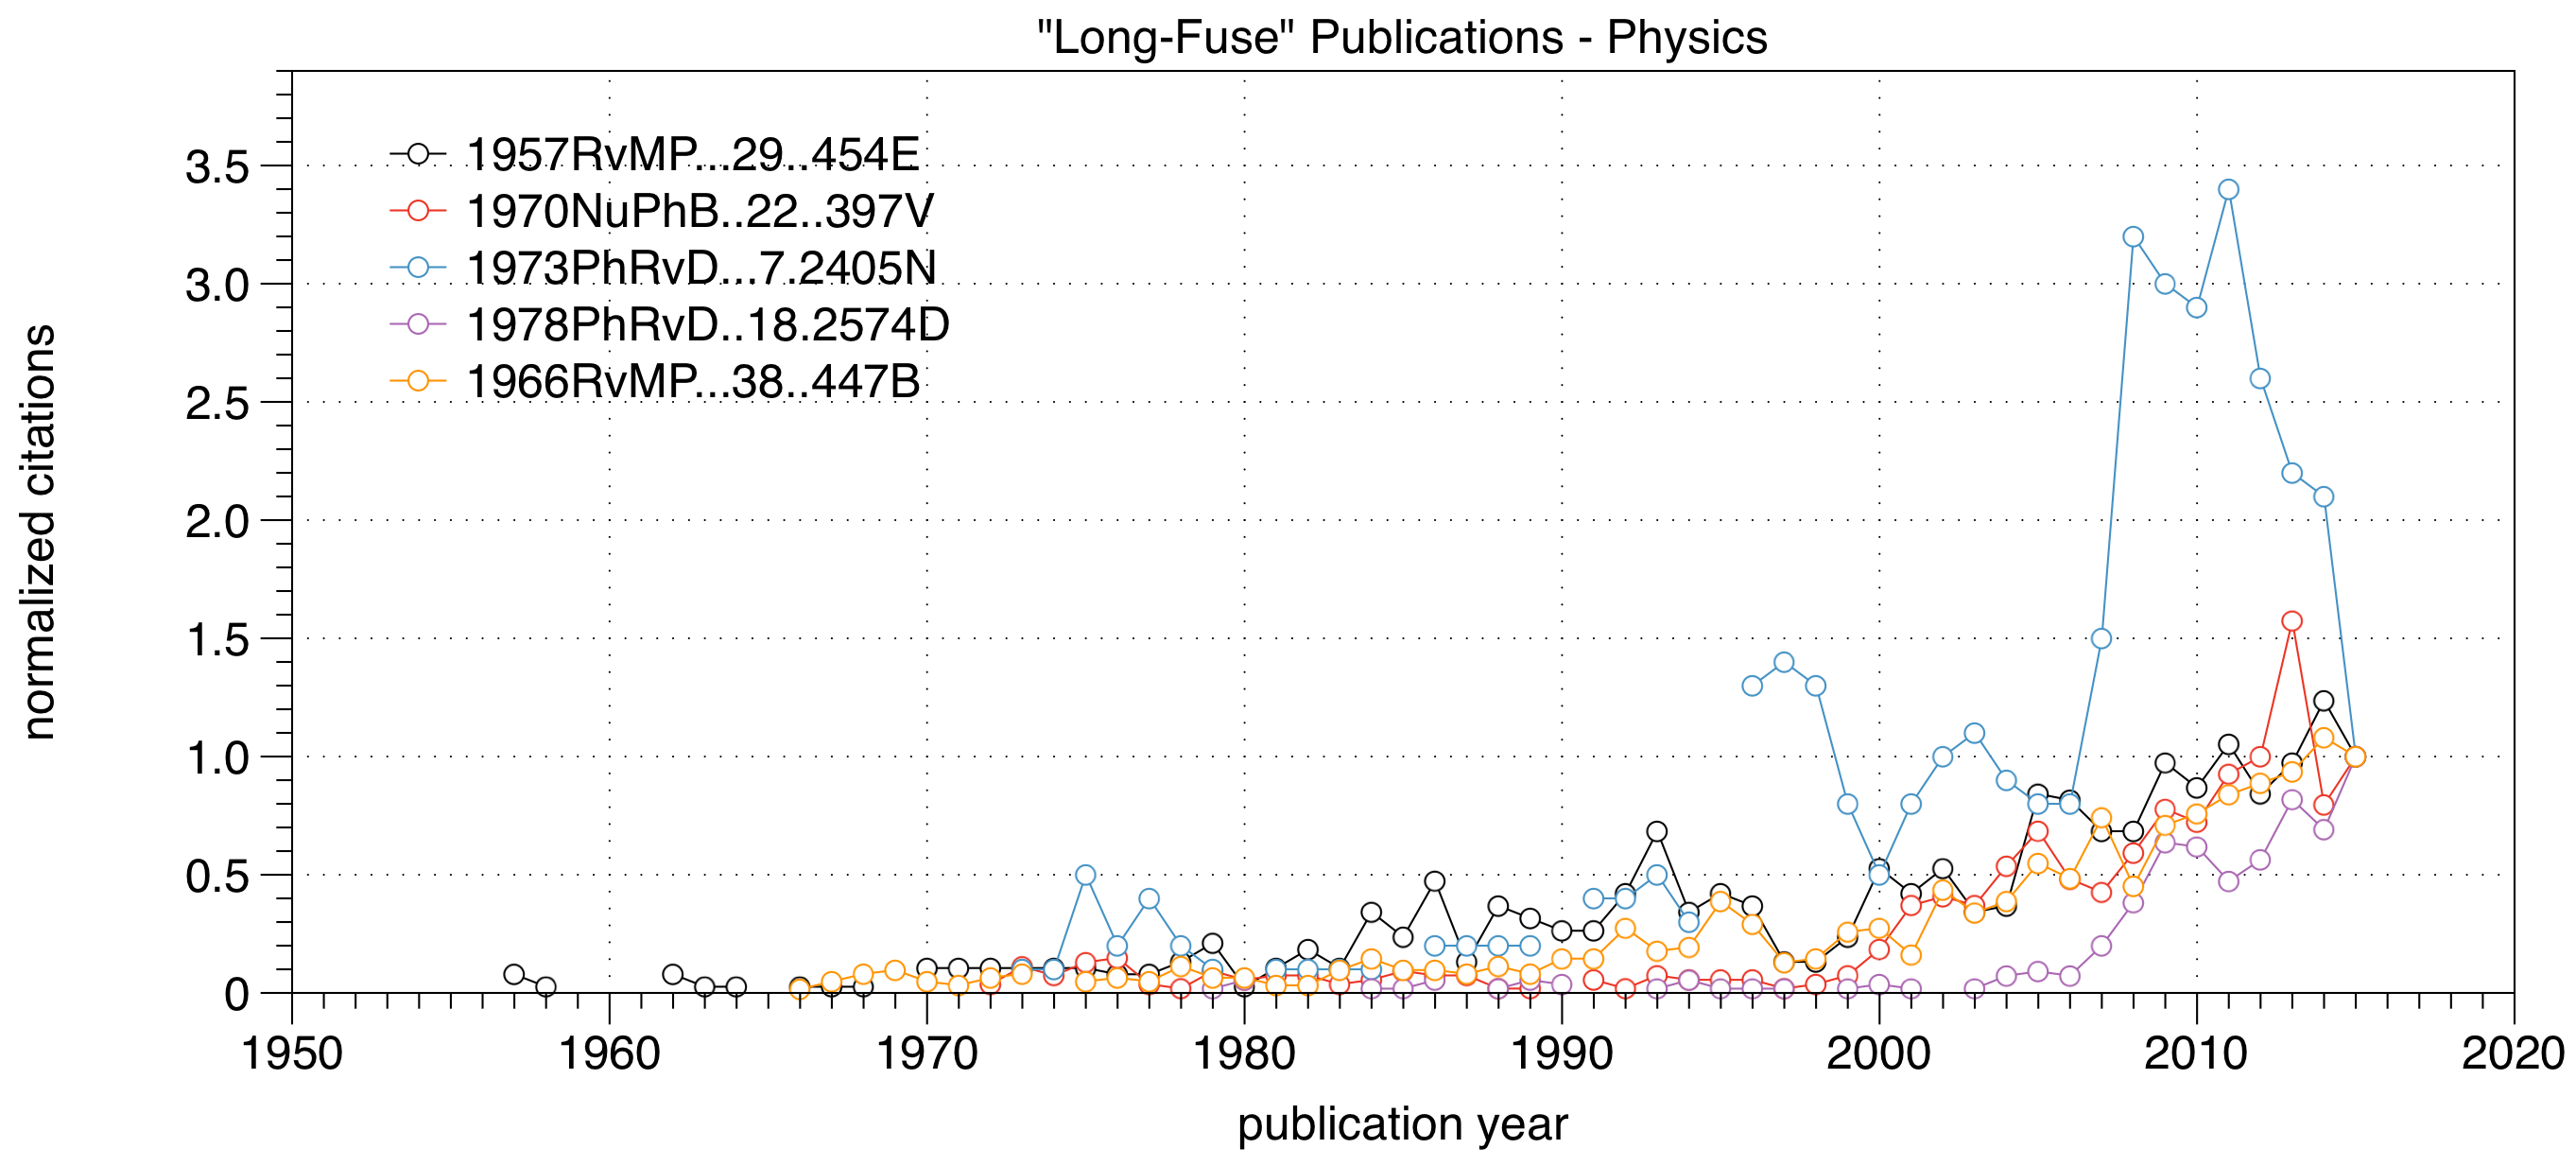 Normalized citations for 5 long-fuse physics papers